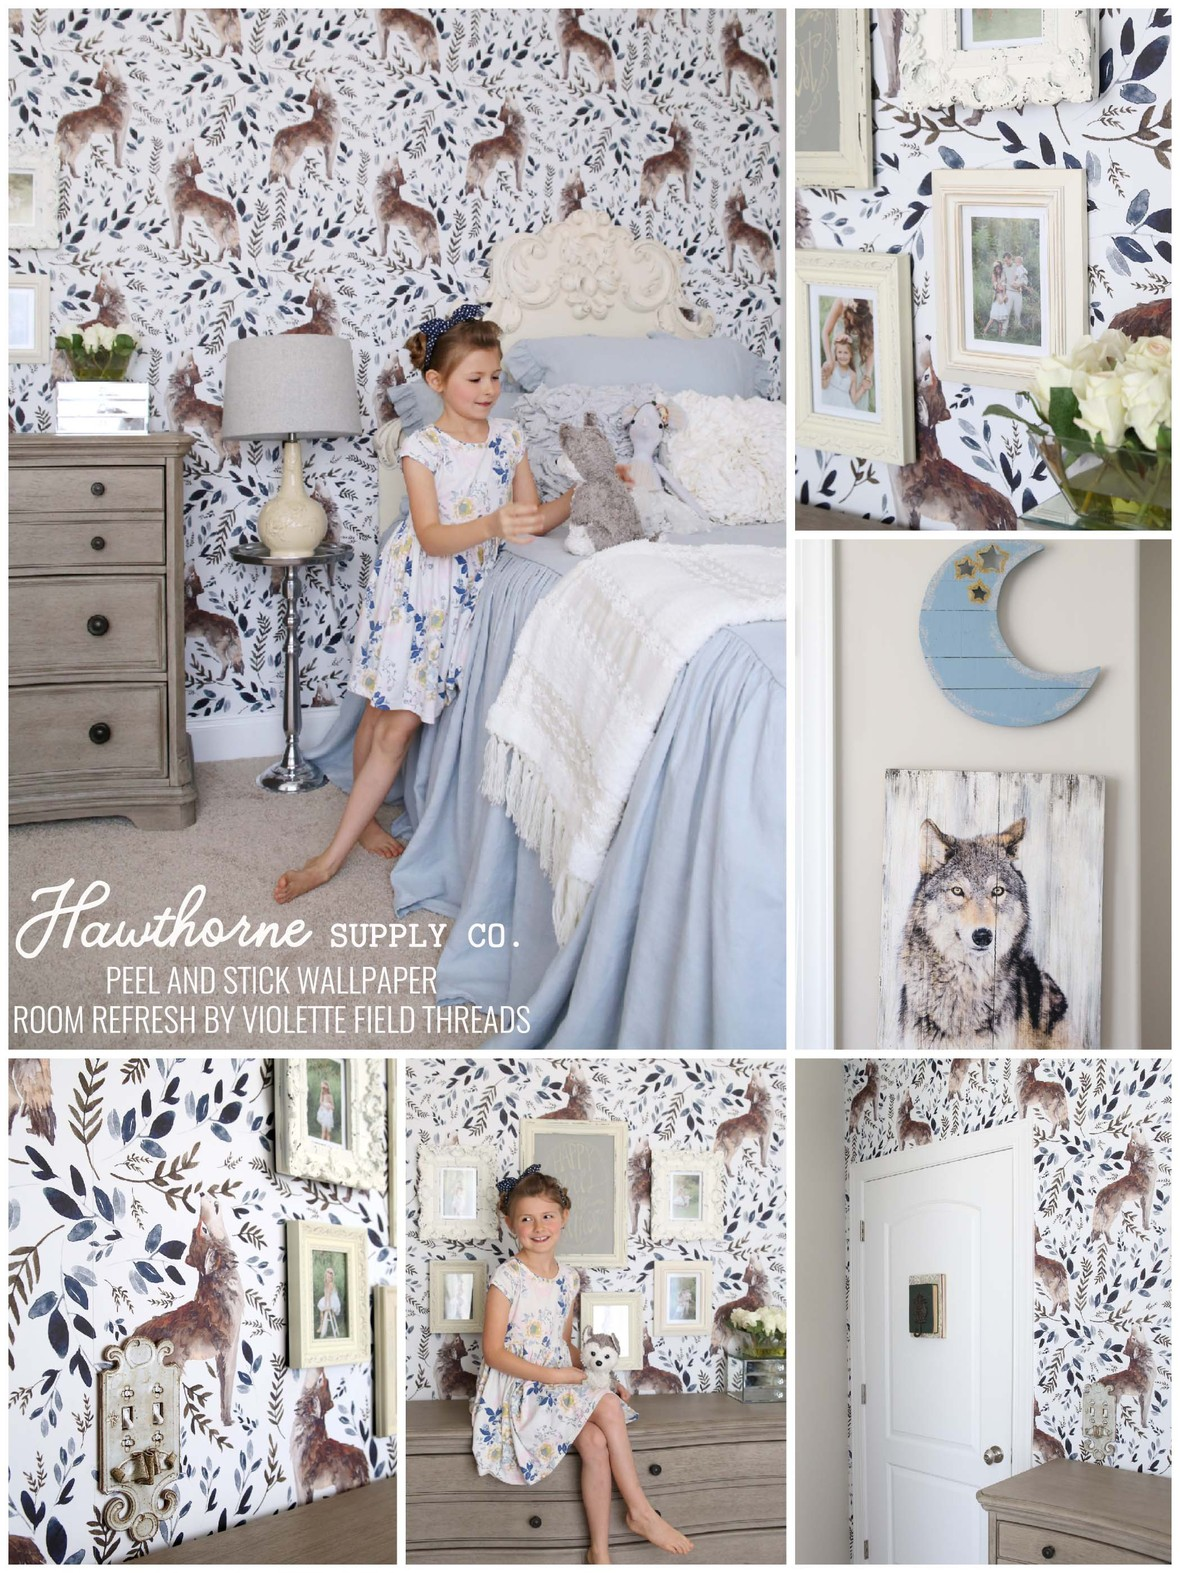 Howl at the Moon Wallpaper Shopcabin at Hawthorne Supply Co